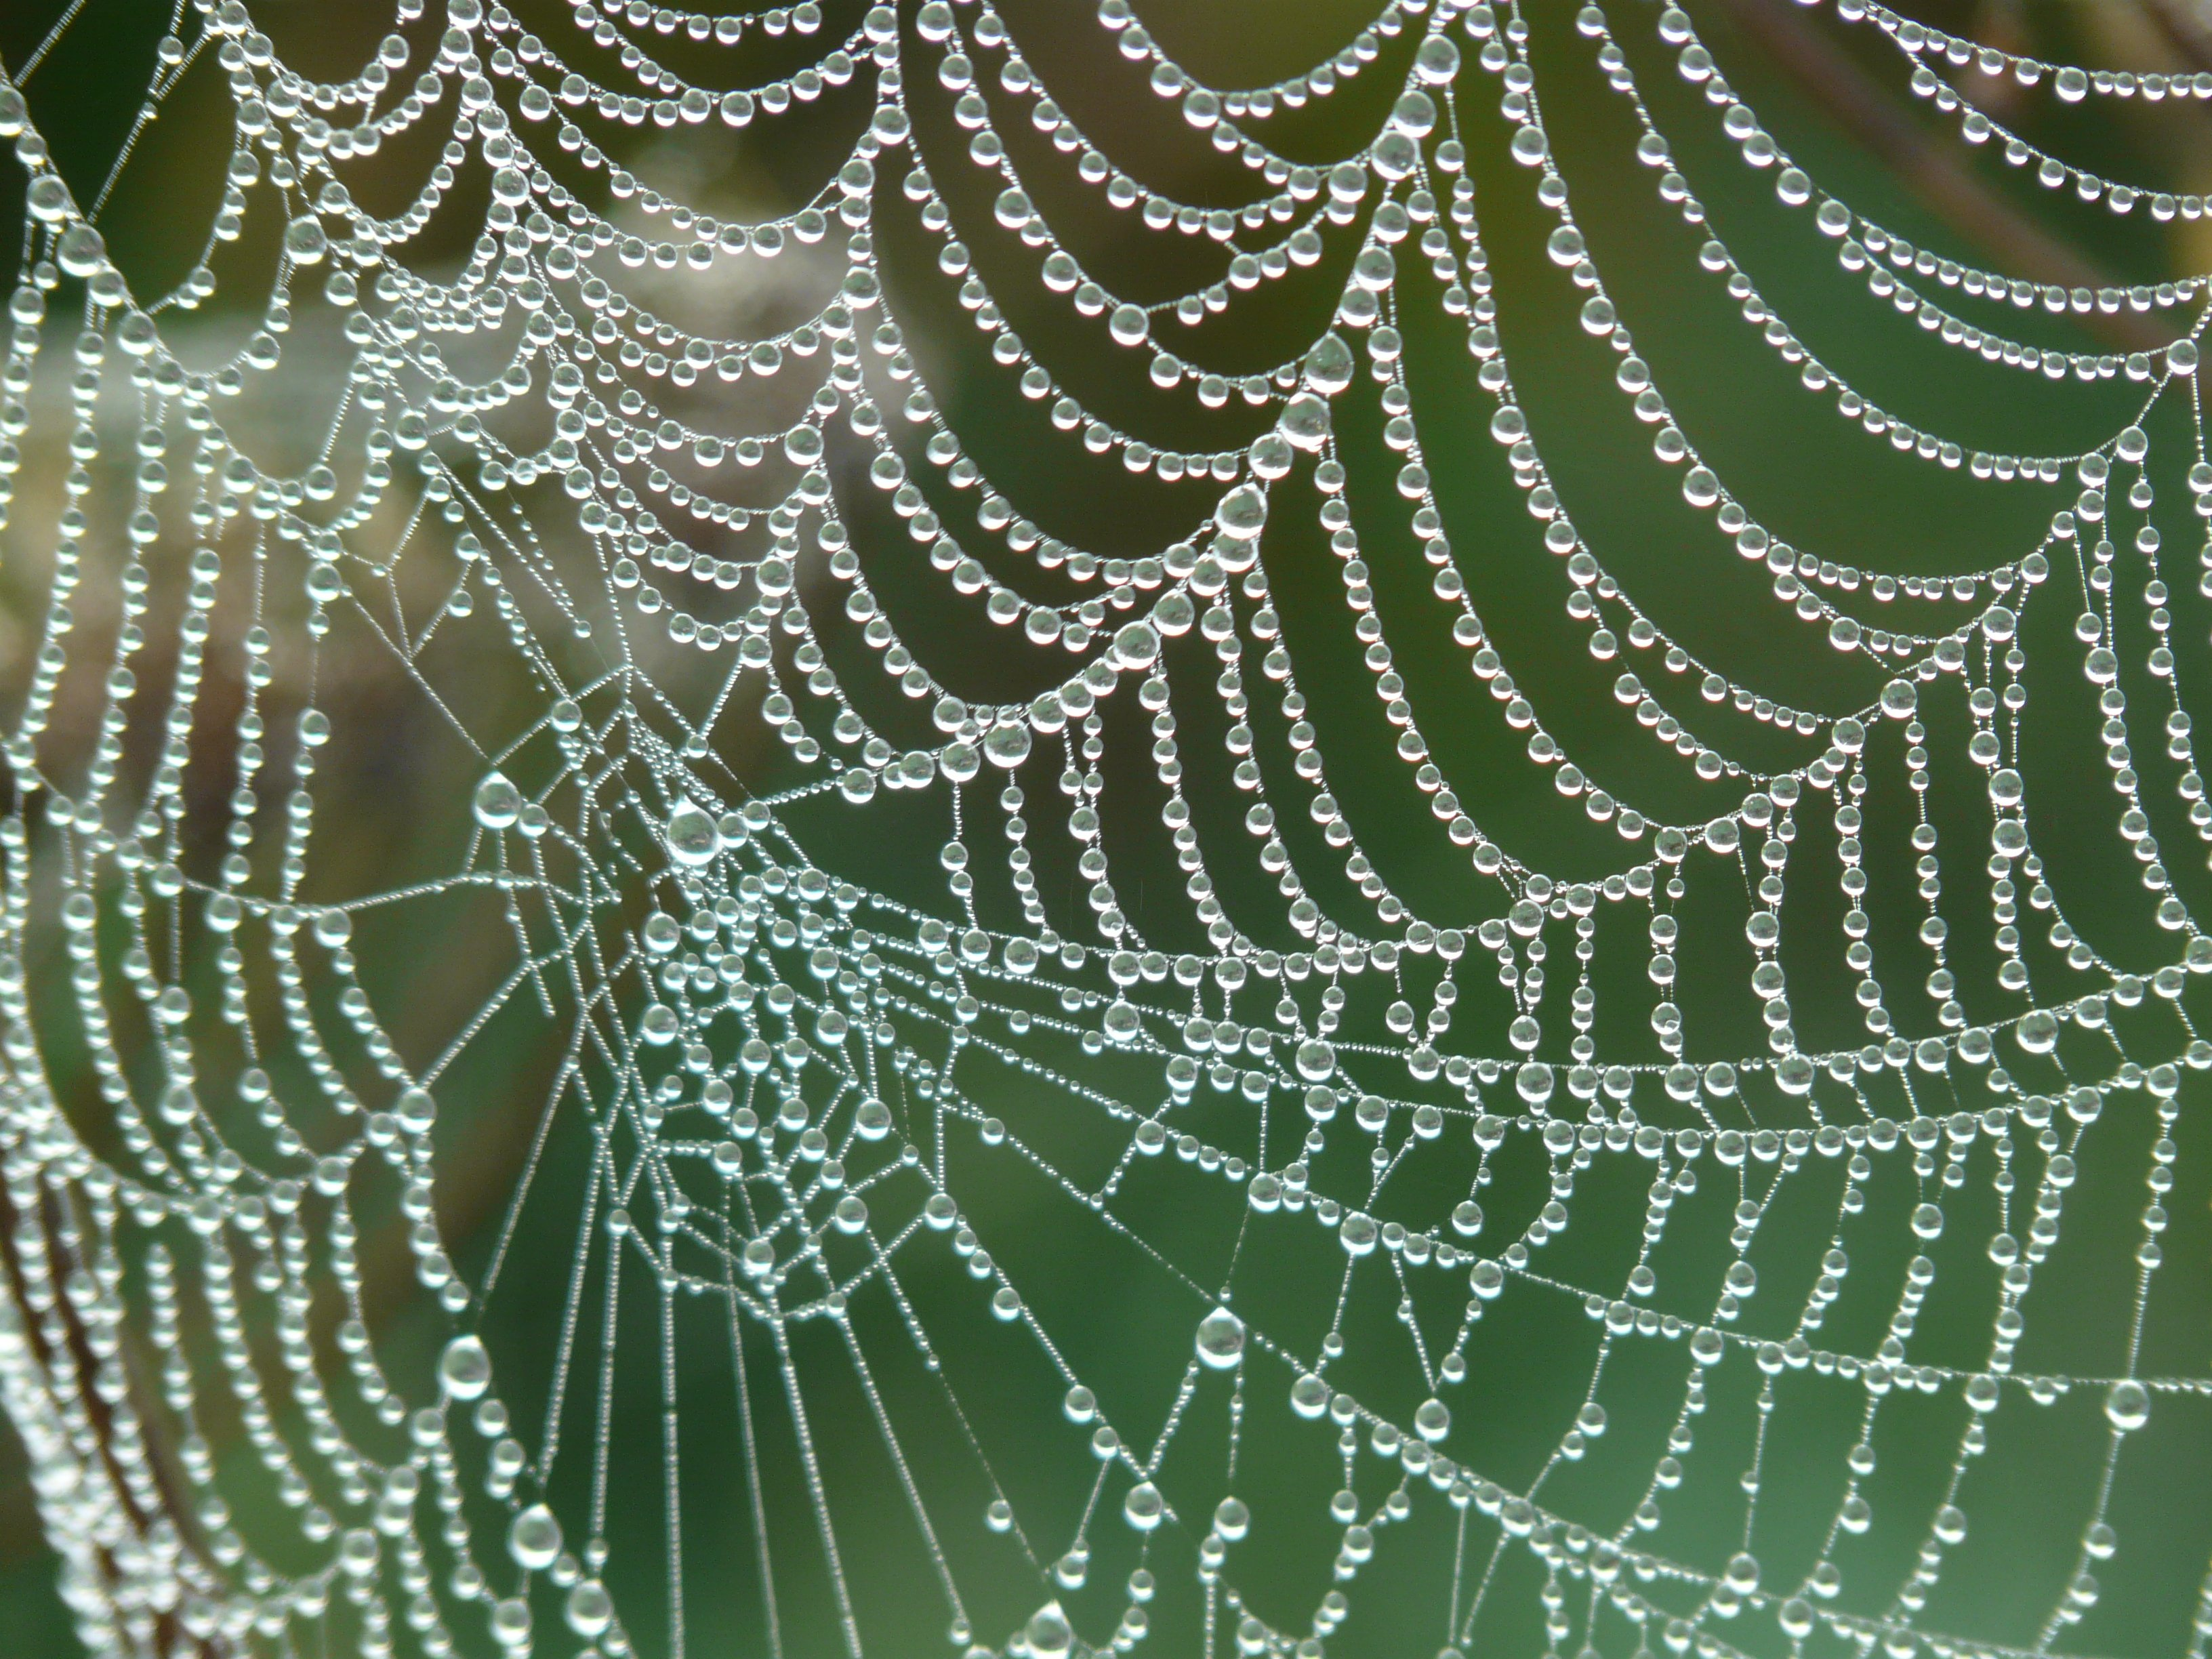 Free stock photos of spider web · Pexels